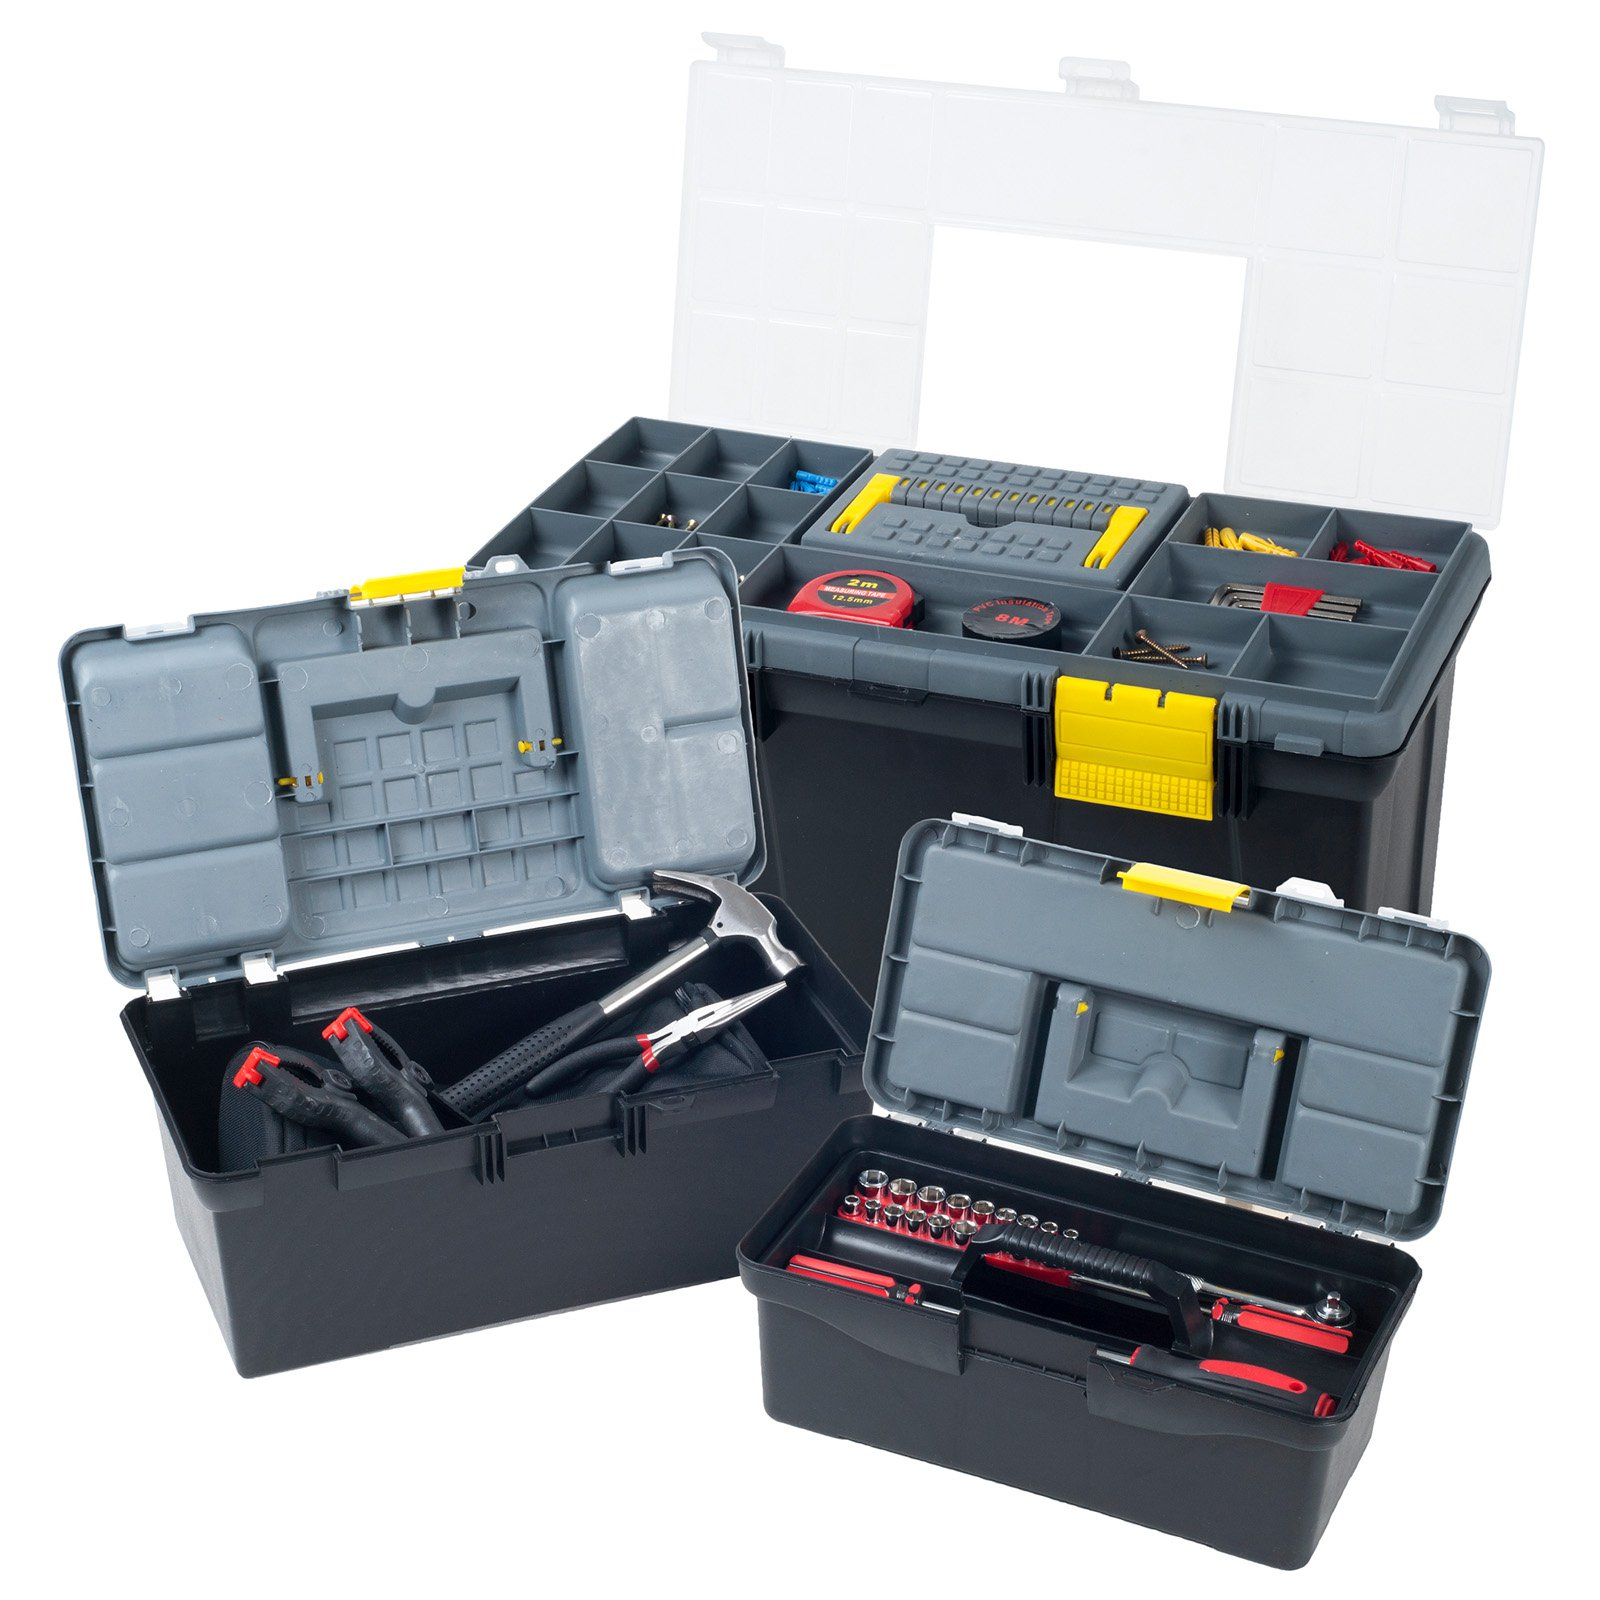 Stalwart Crafts 3 in 1 Tool Box Set